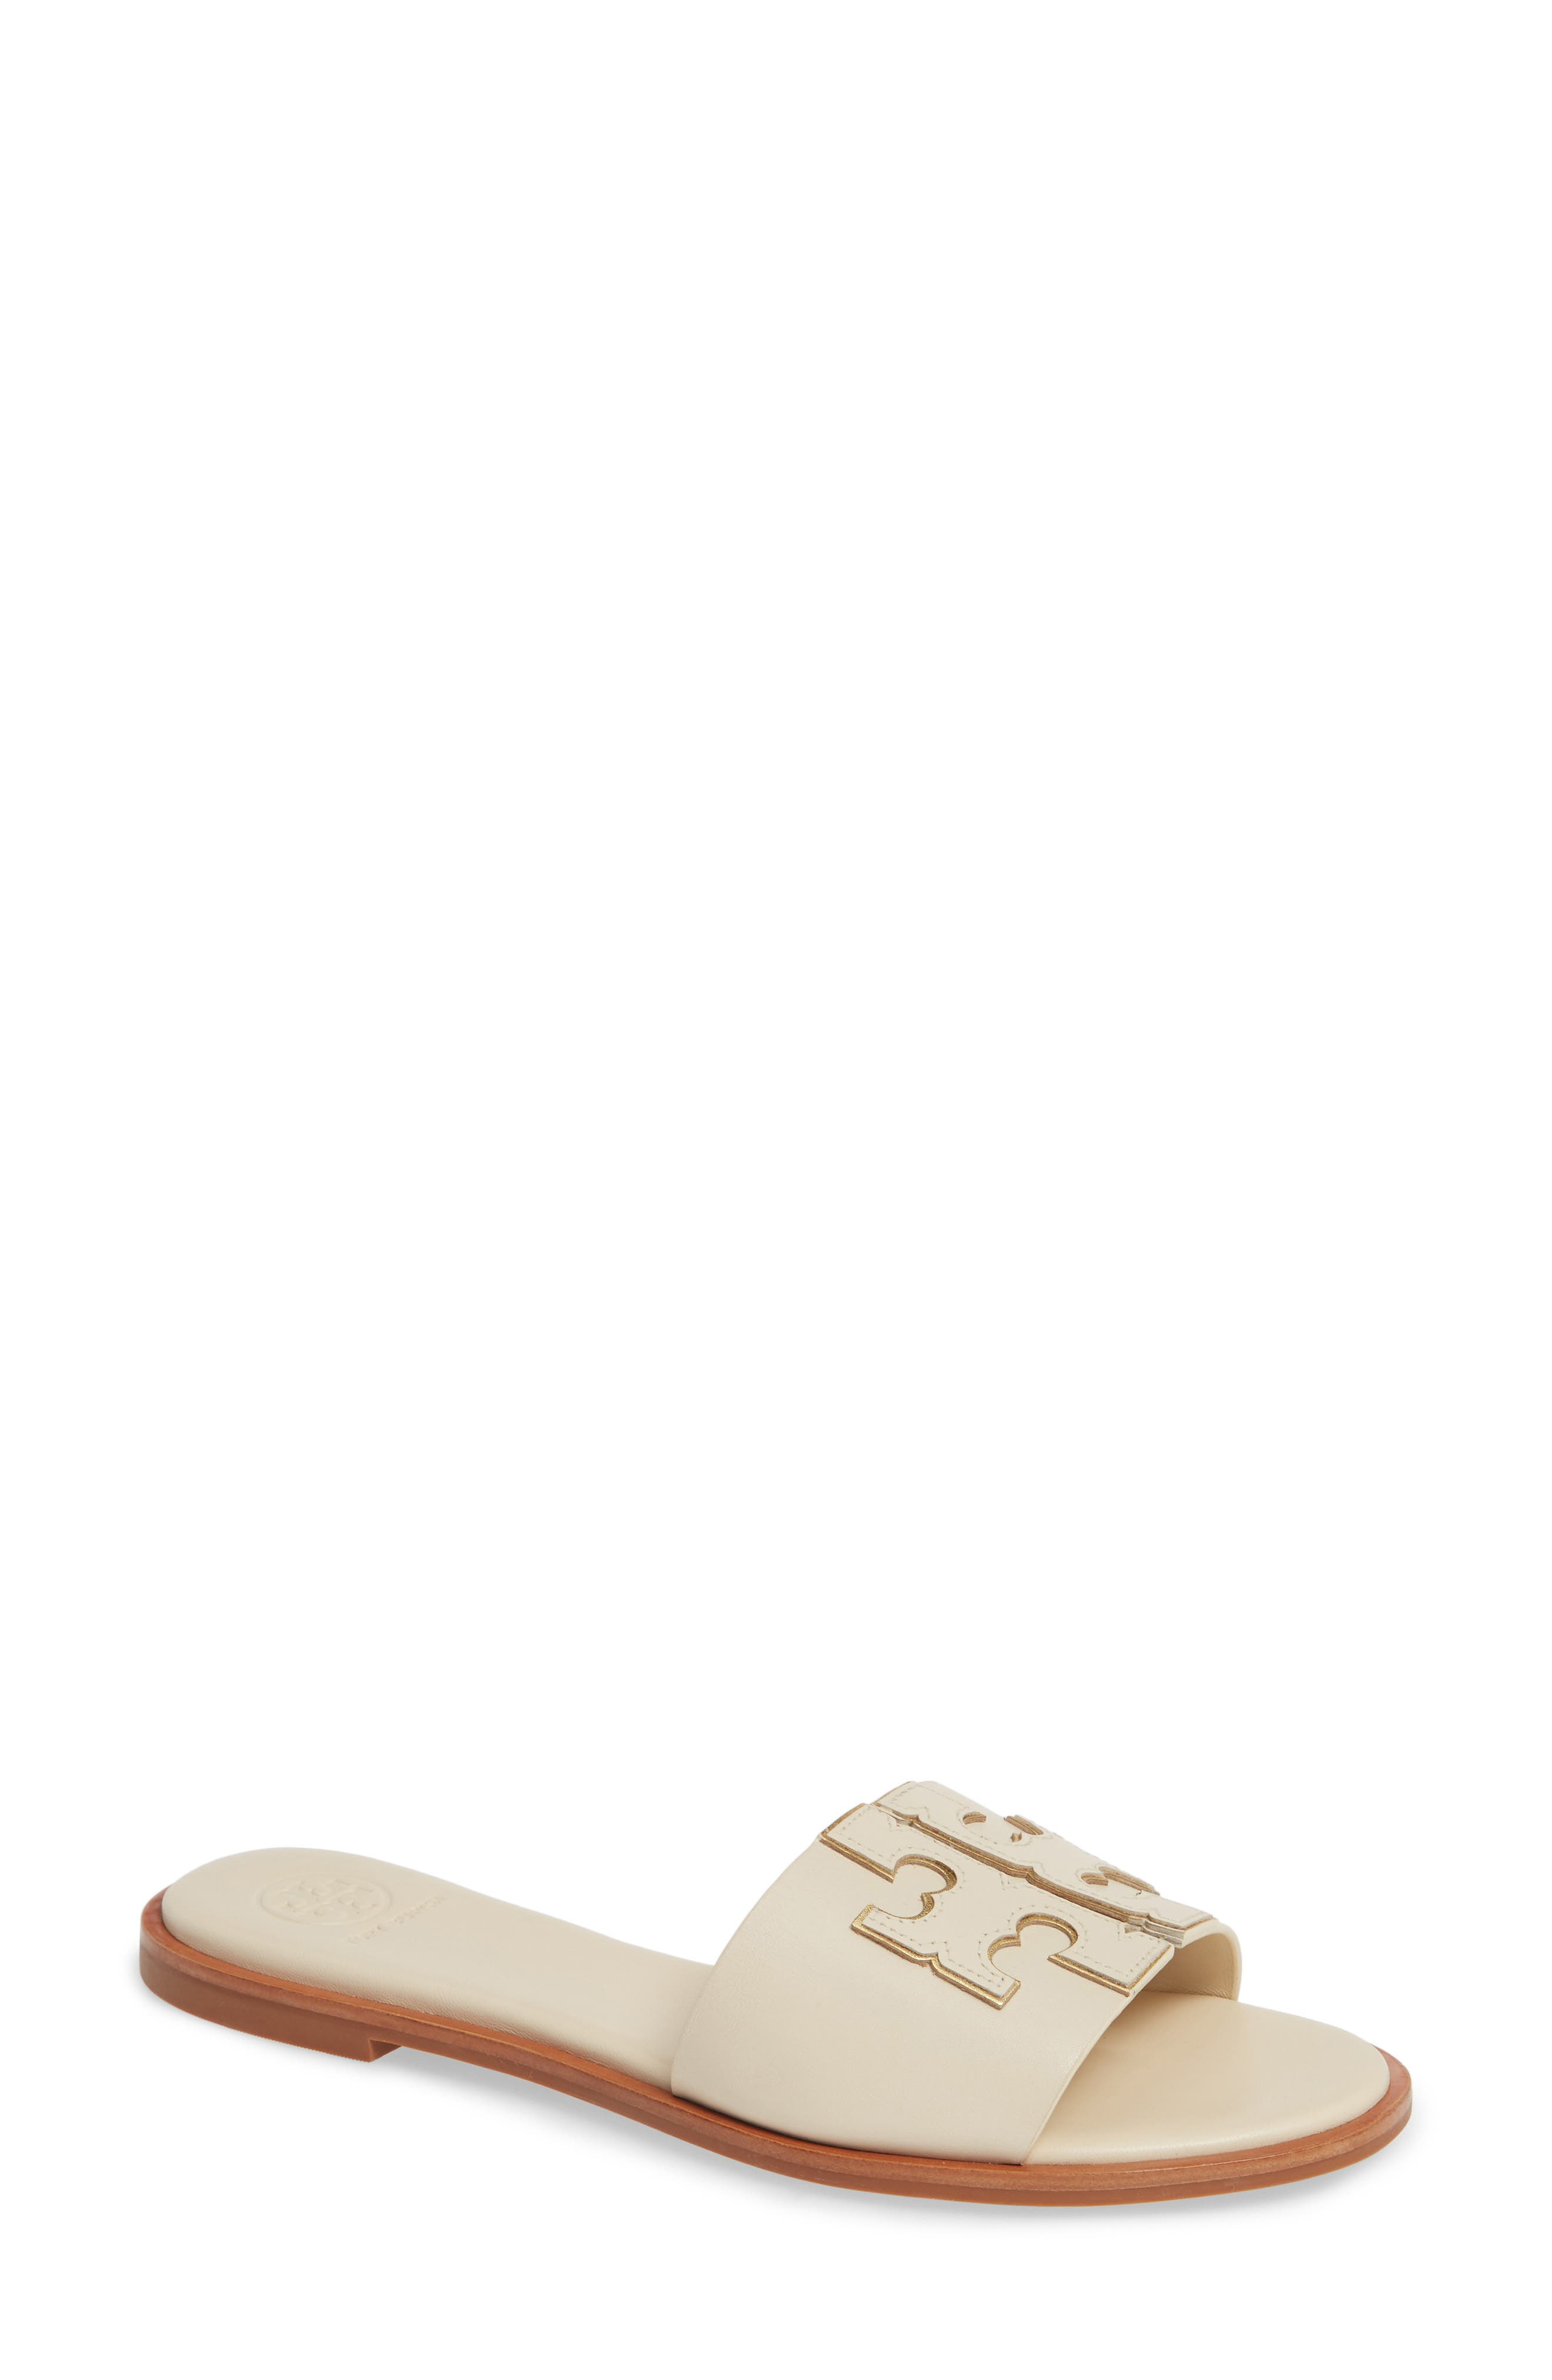 TORY BURCH, Ines Slide Sandal, Main thumbnail 1, color, NEW CREAM/ GOLD